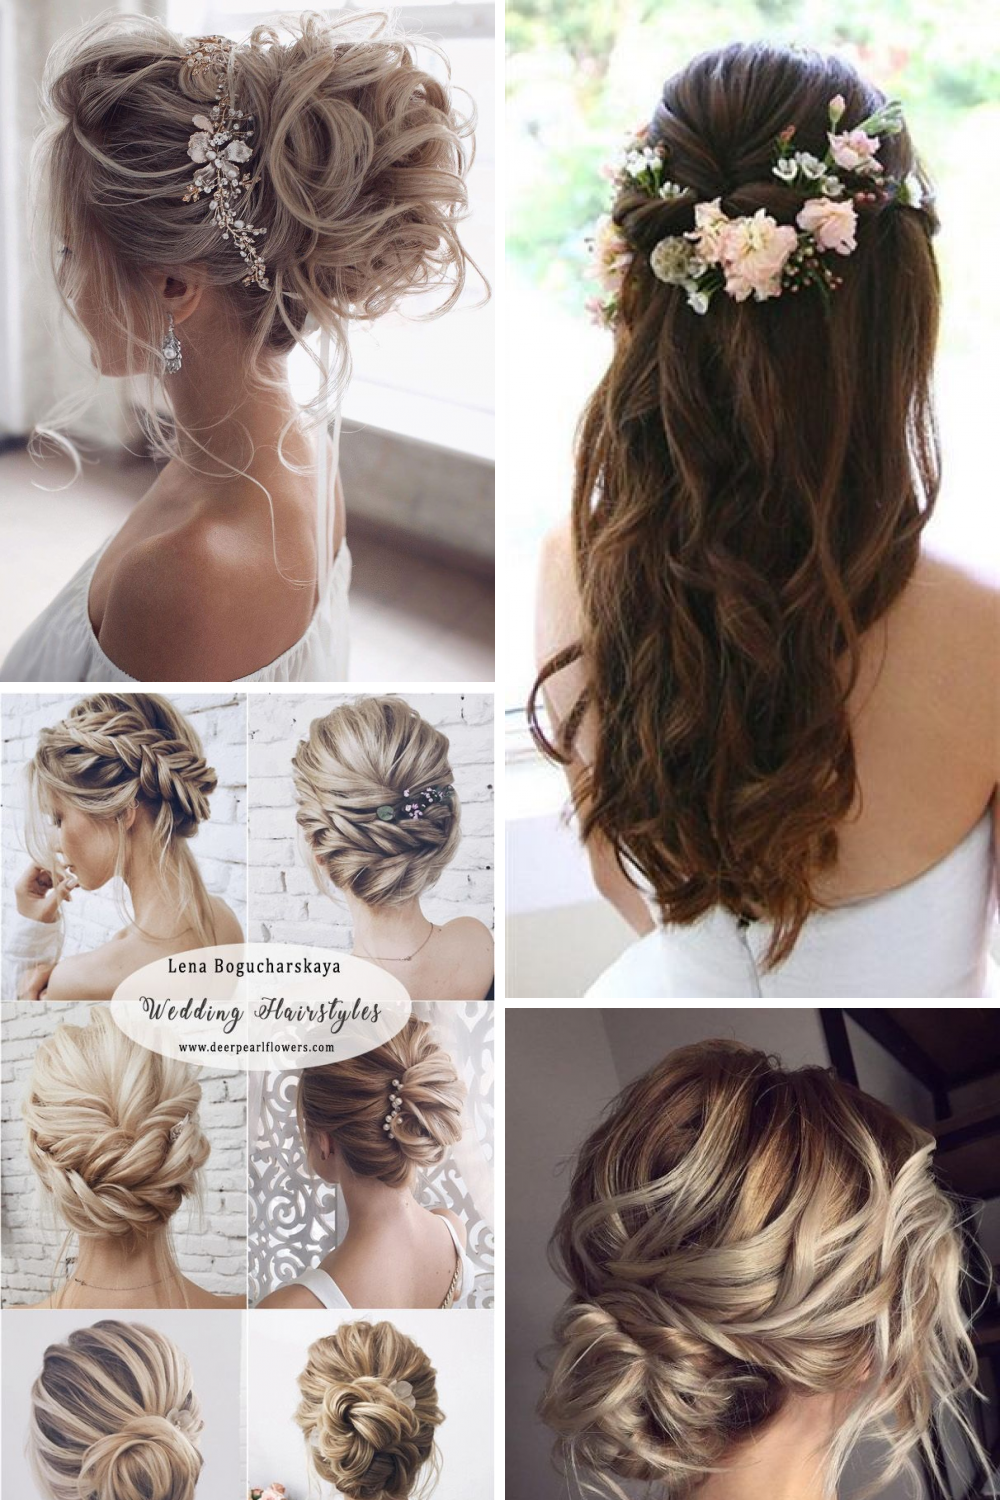 14 Stylish Wedding Hairstyle Pictures Hairstyle Pictures Stylish Wedding Weddinghairs Hochzeit Frisuren Kurz Hochzeitsfrisuren Brautfrisur